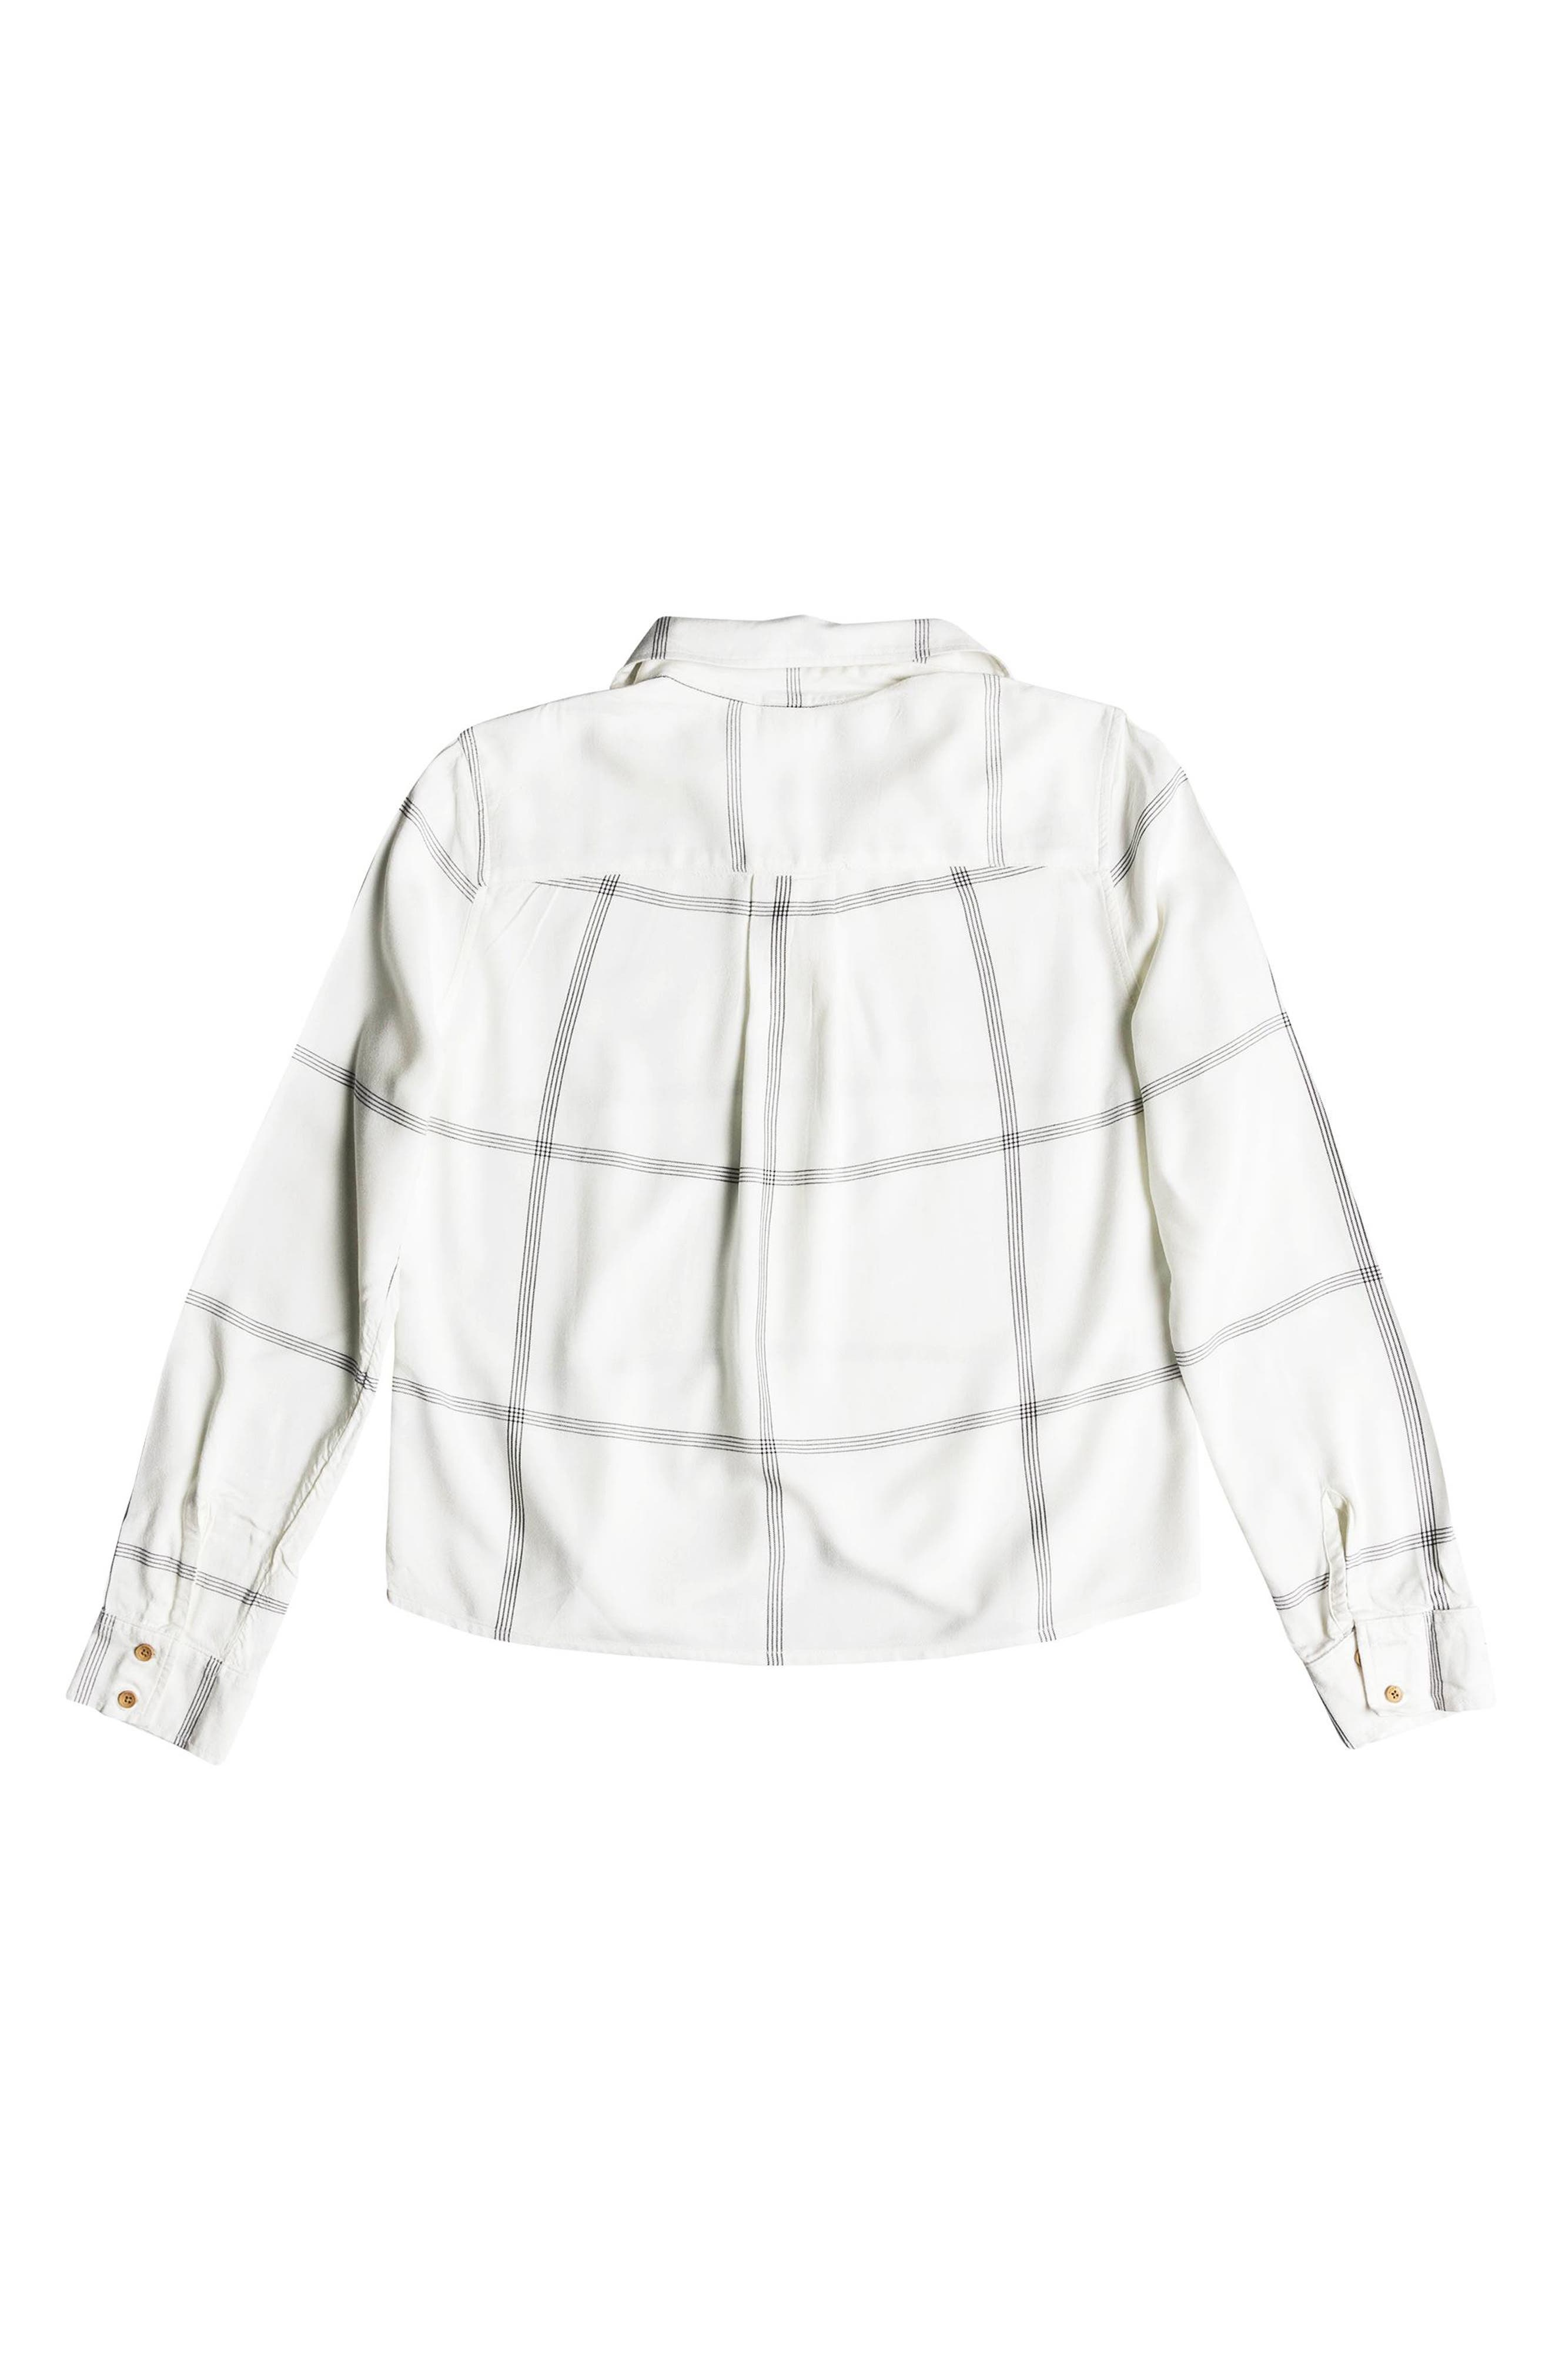 Suburb Vibes Tie Waist Top,                             Alternate thumbnail 6, color,                             MARSHMALLOW THIN LINES PLAID